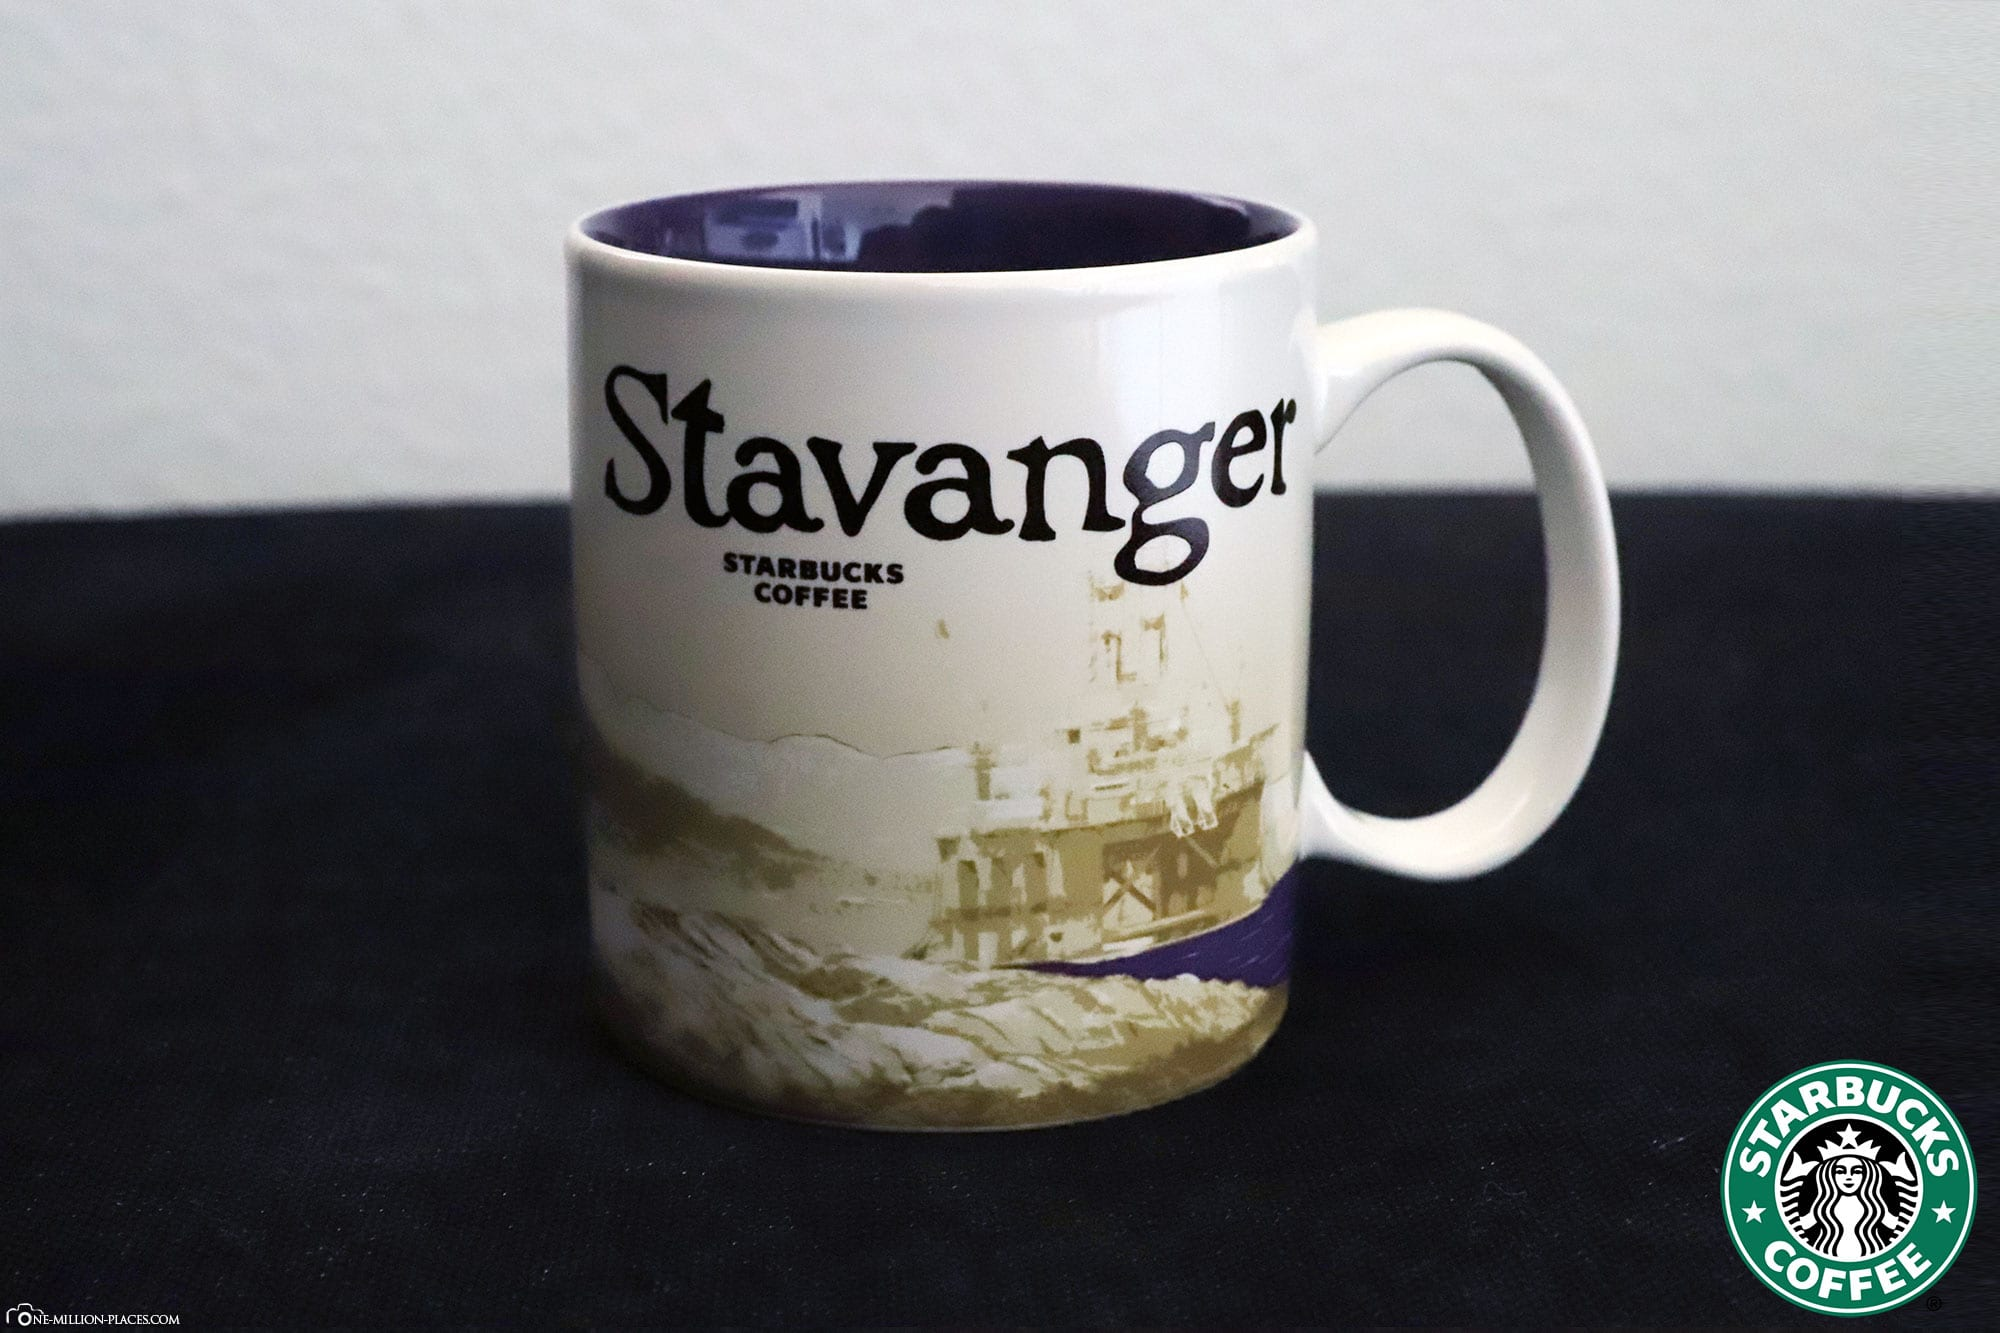 Stavanger, Starbucks Cup, Global Icon Series, City Mugs, Collection, Norway, Travelreport